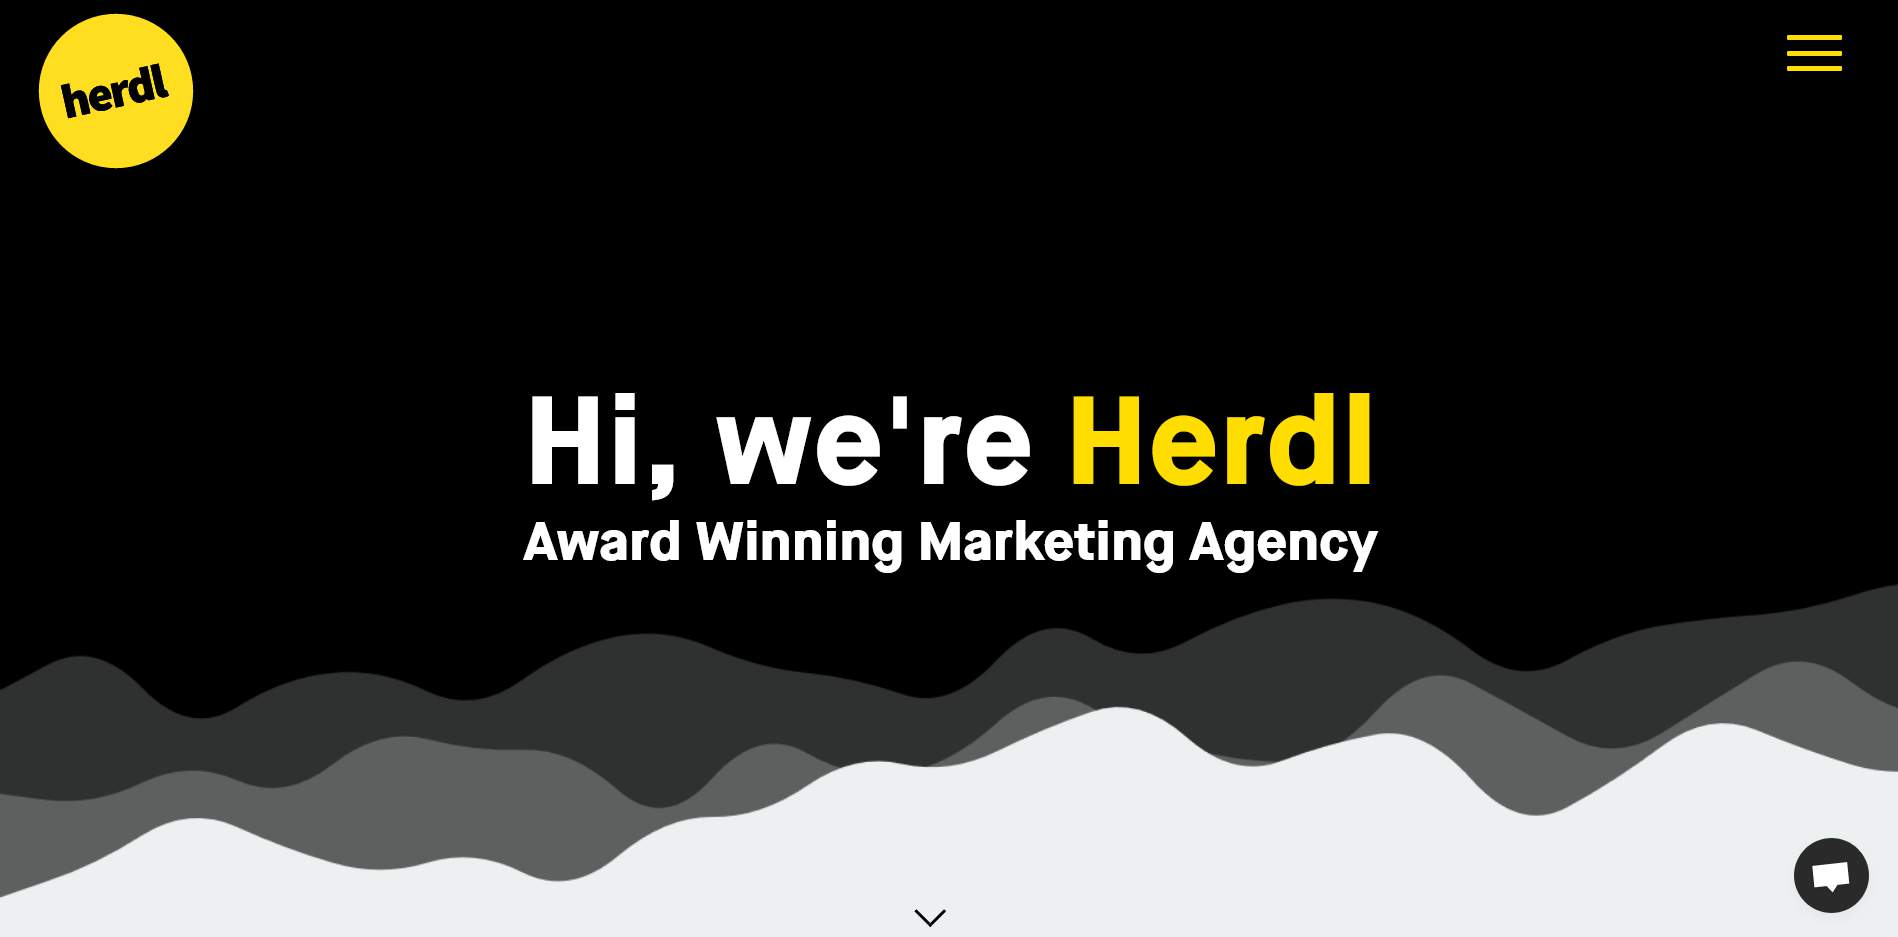 Herdl's website homepage, another example of a great web design and web development agency.